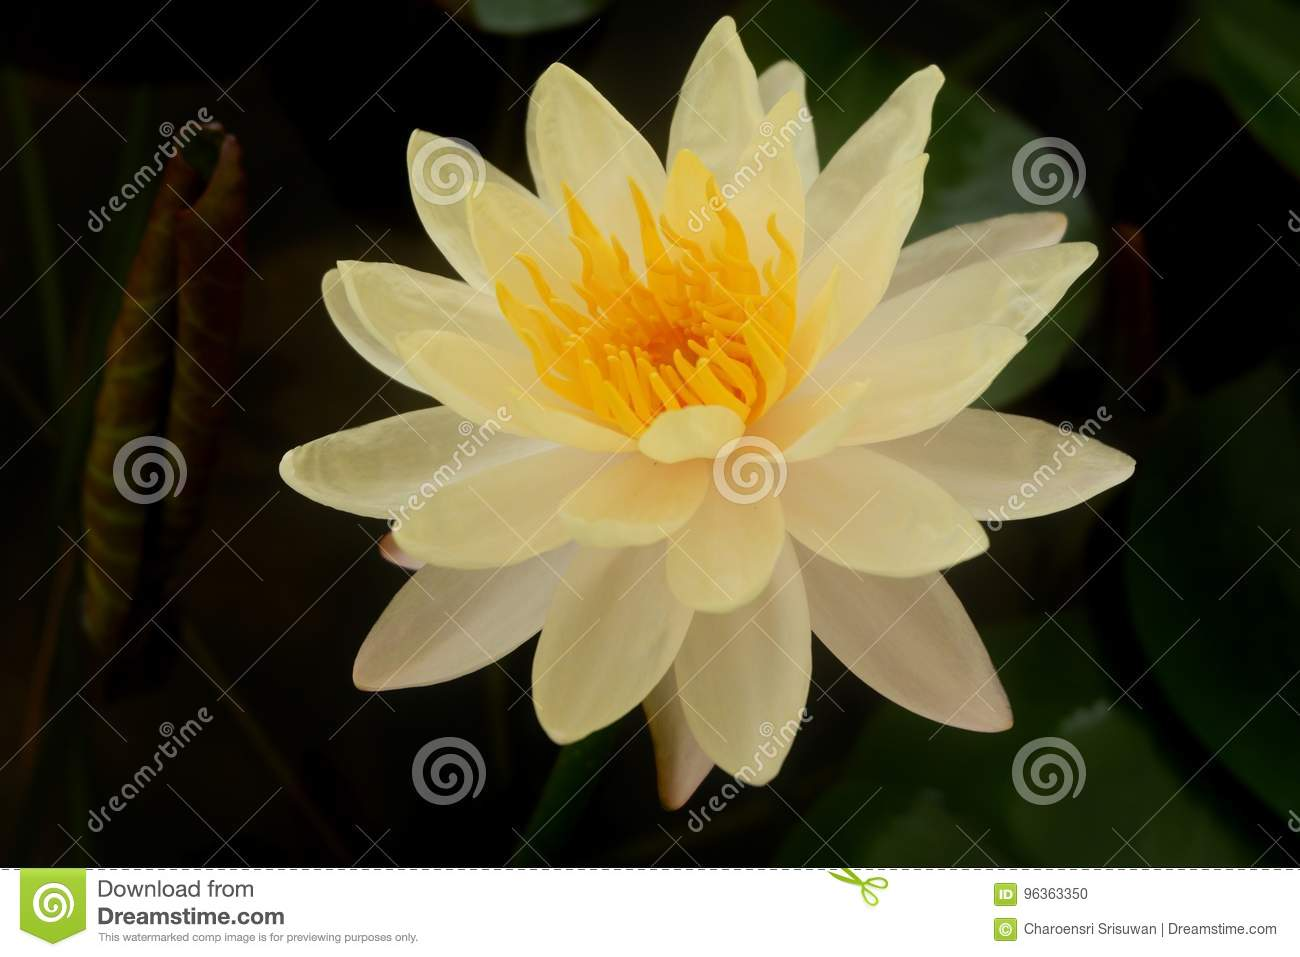 The white lotus flower and pink lotus flower stock photo image of the white lotus flower and pink lotus flower stock photo image of color leaf 96363350 izmirmasajfo